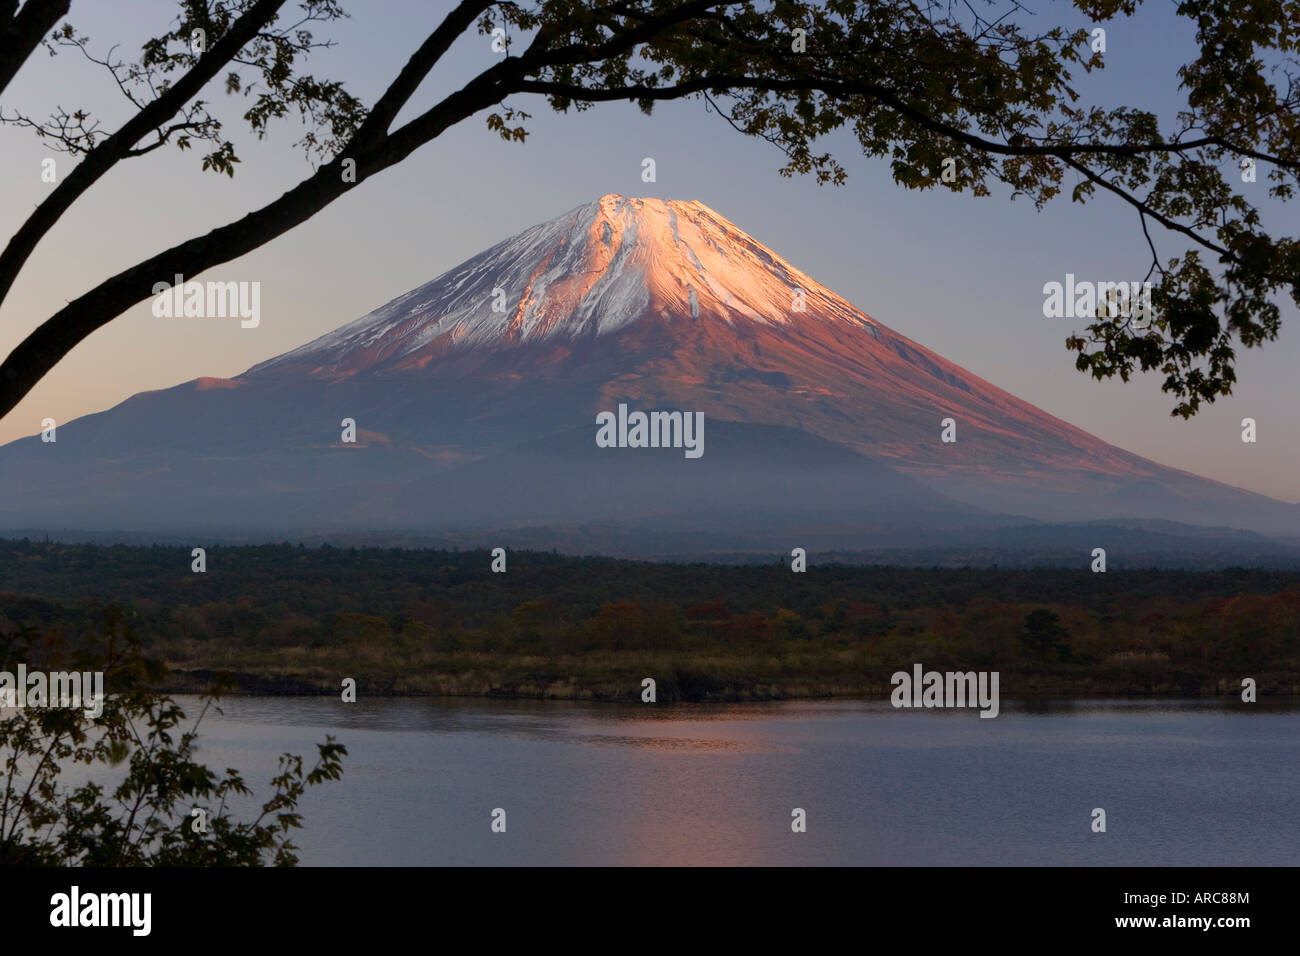 Lake Shoji-ko and Mount Fuji in evening light, Fuji-Hakone-Izu National Park, Honshu, Japan, Asia - Stock Image